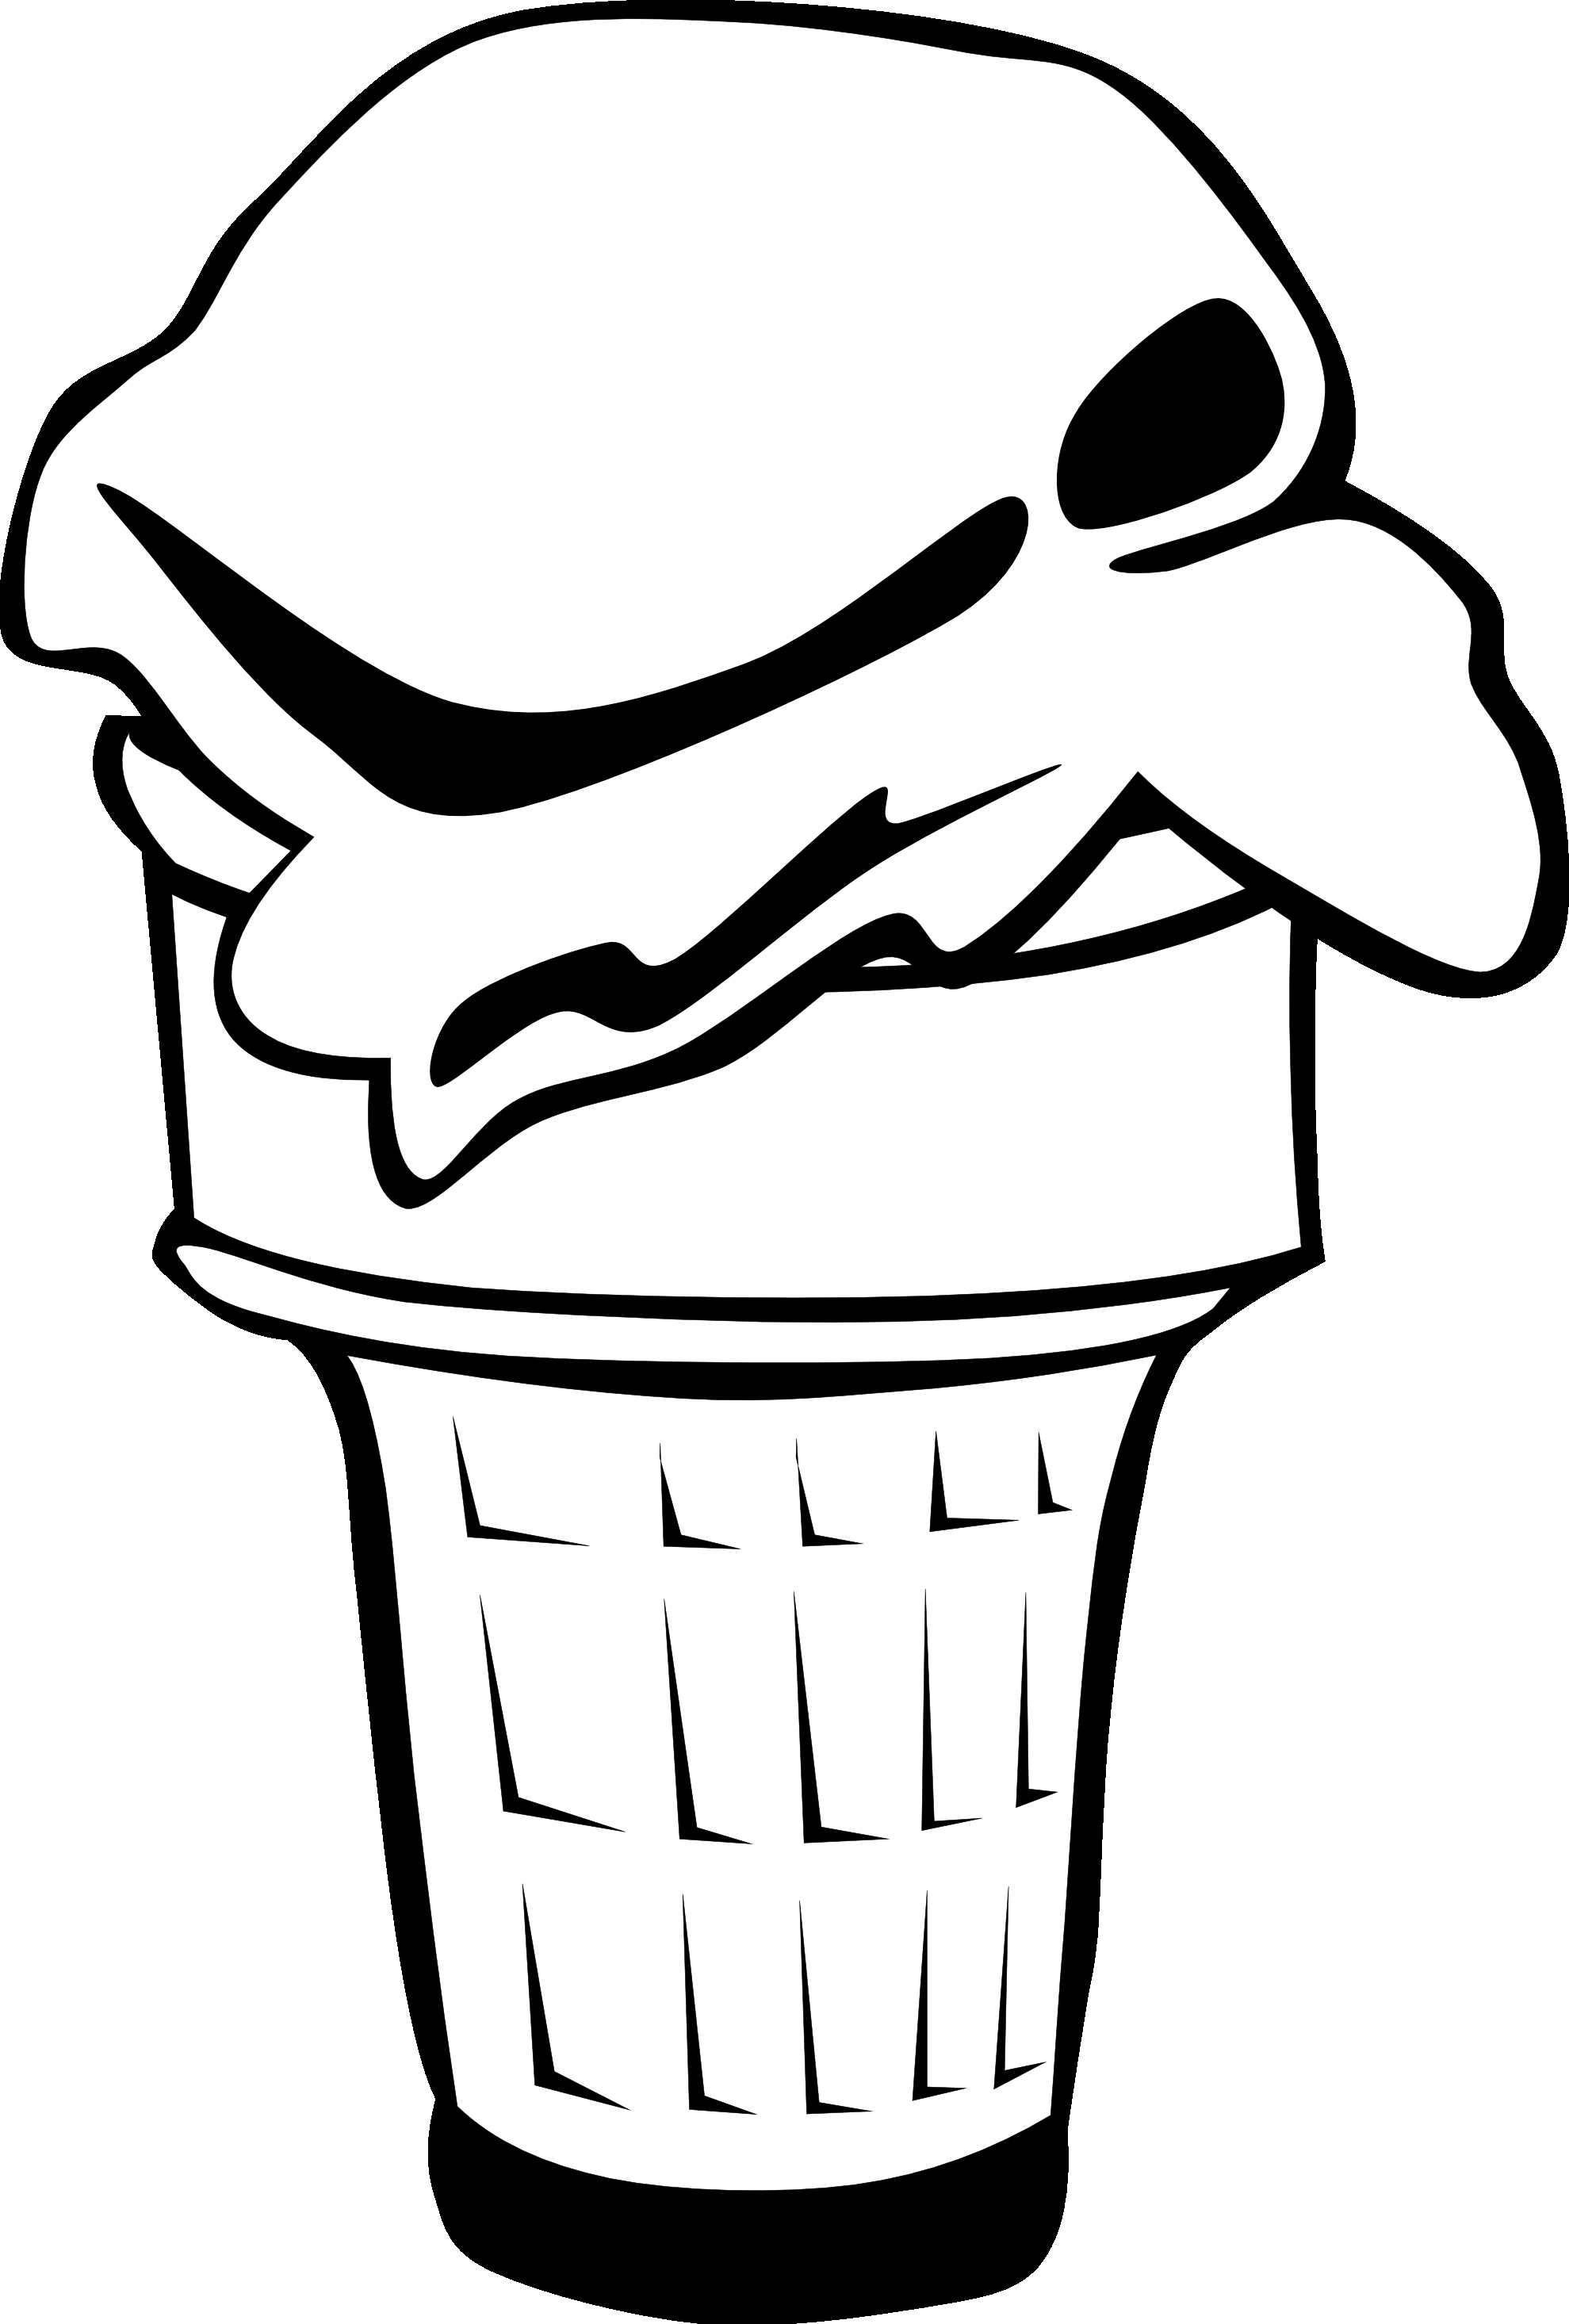 Black And White Ice Cream Cone Clipart